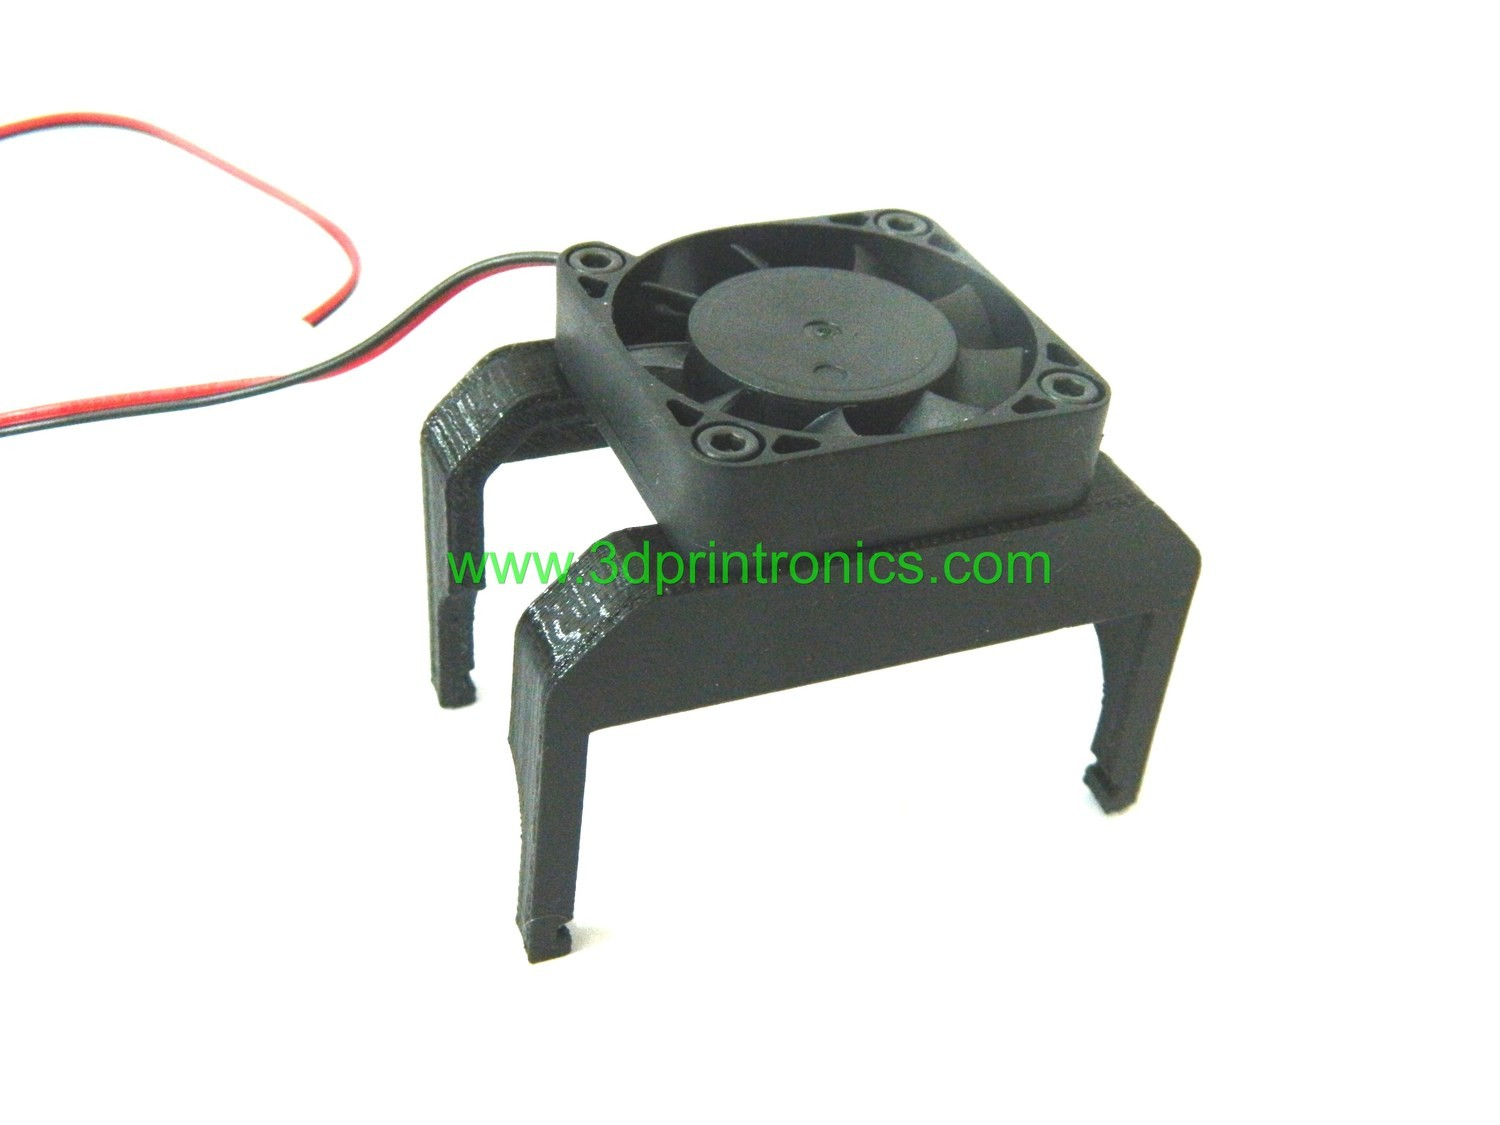 40mm Cooling Fan with mount for RAMPS 1.4